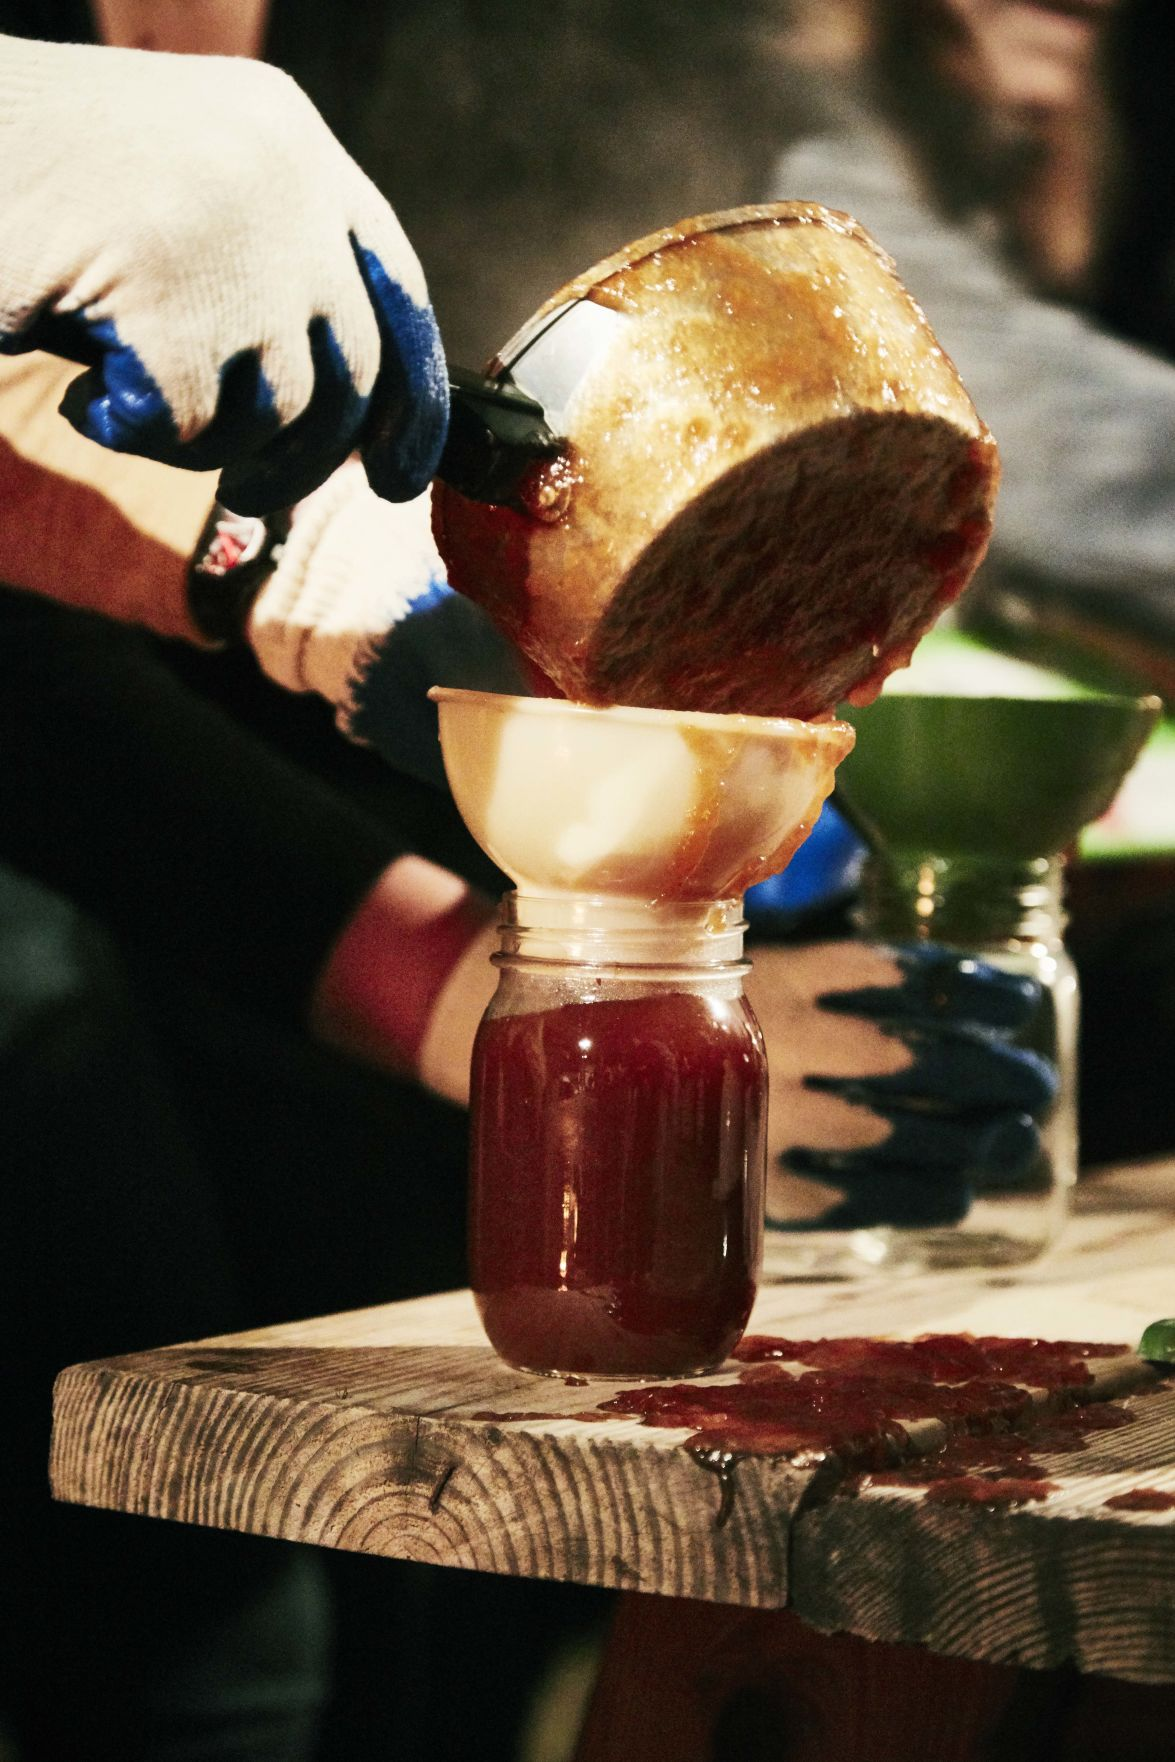 Peel, chop and stir for hours: How Appalachia's beloved community apple-butter parties live on